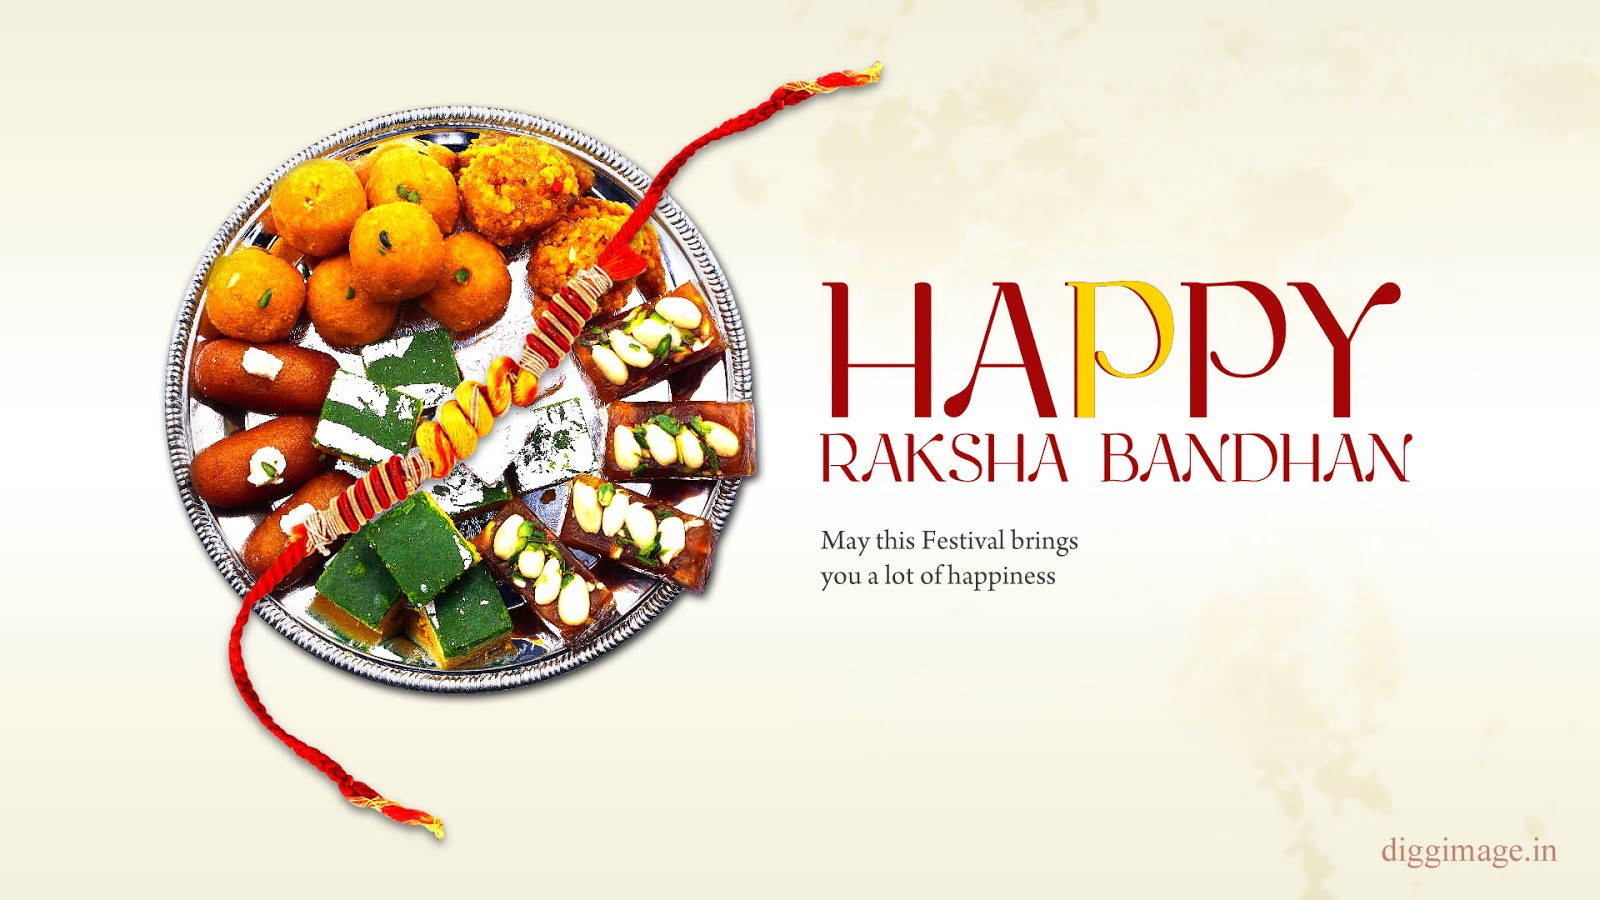 raksha bandhan essay best friend essay for grade prot com my best  this festival brings you a lot a happiness happy raksha raksha bandhan raksha bandhan quotes raksha